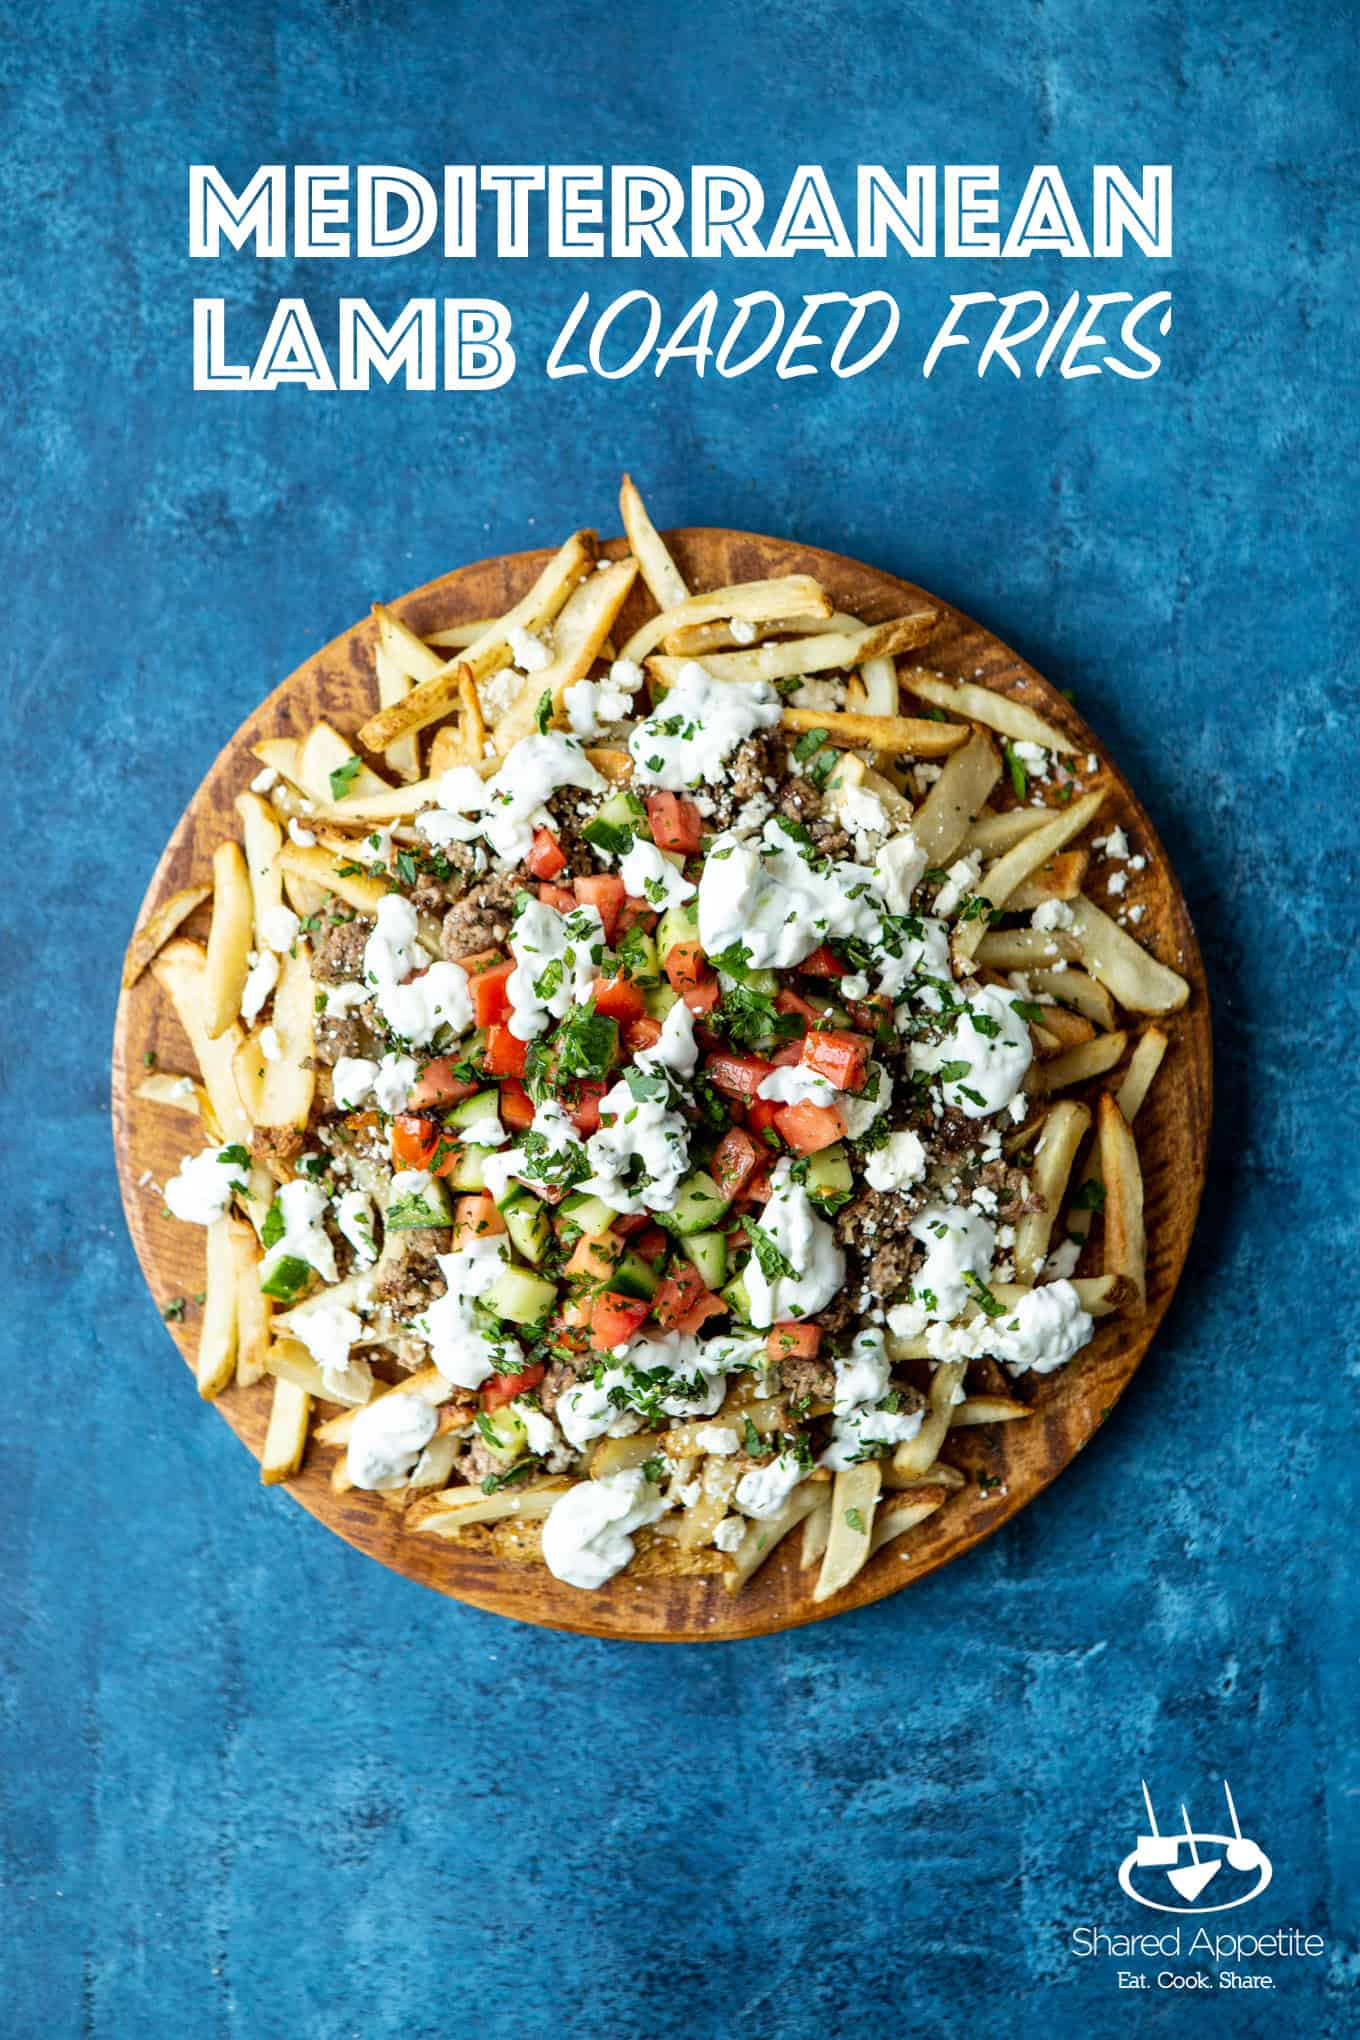 Loaded Mediterranean Lamb Fries | sharedappetite.com